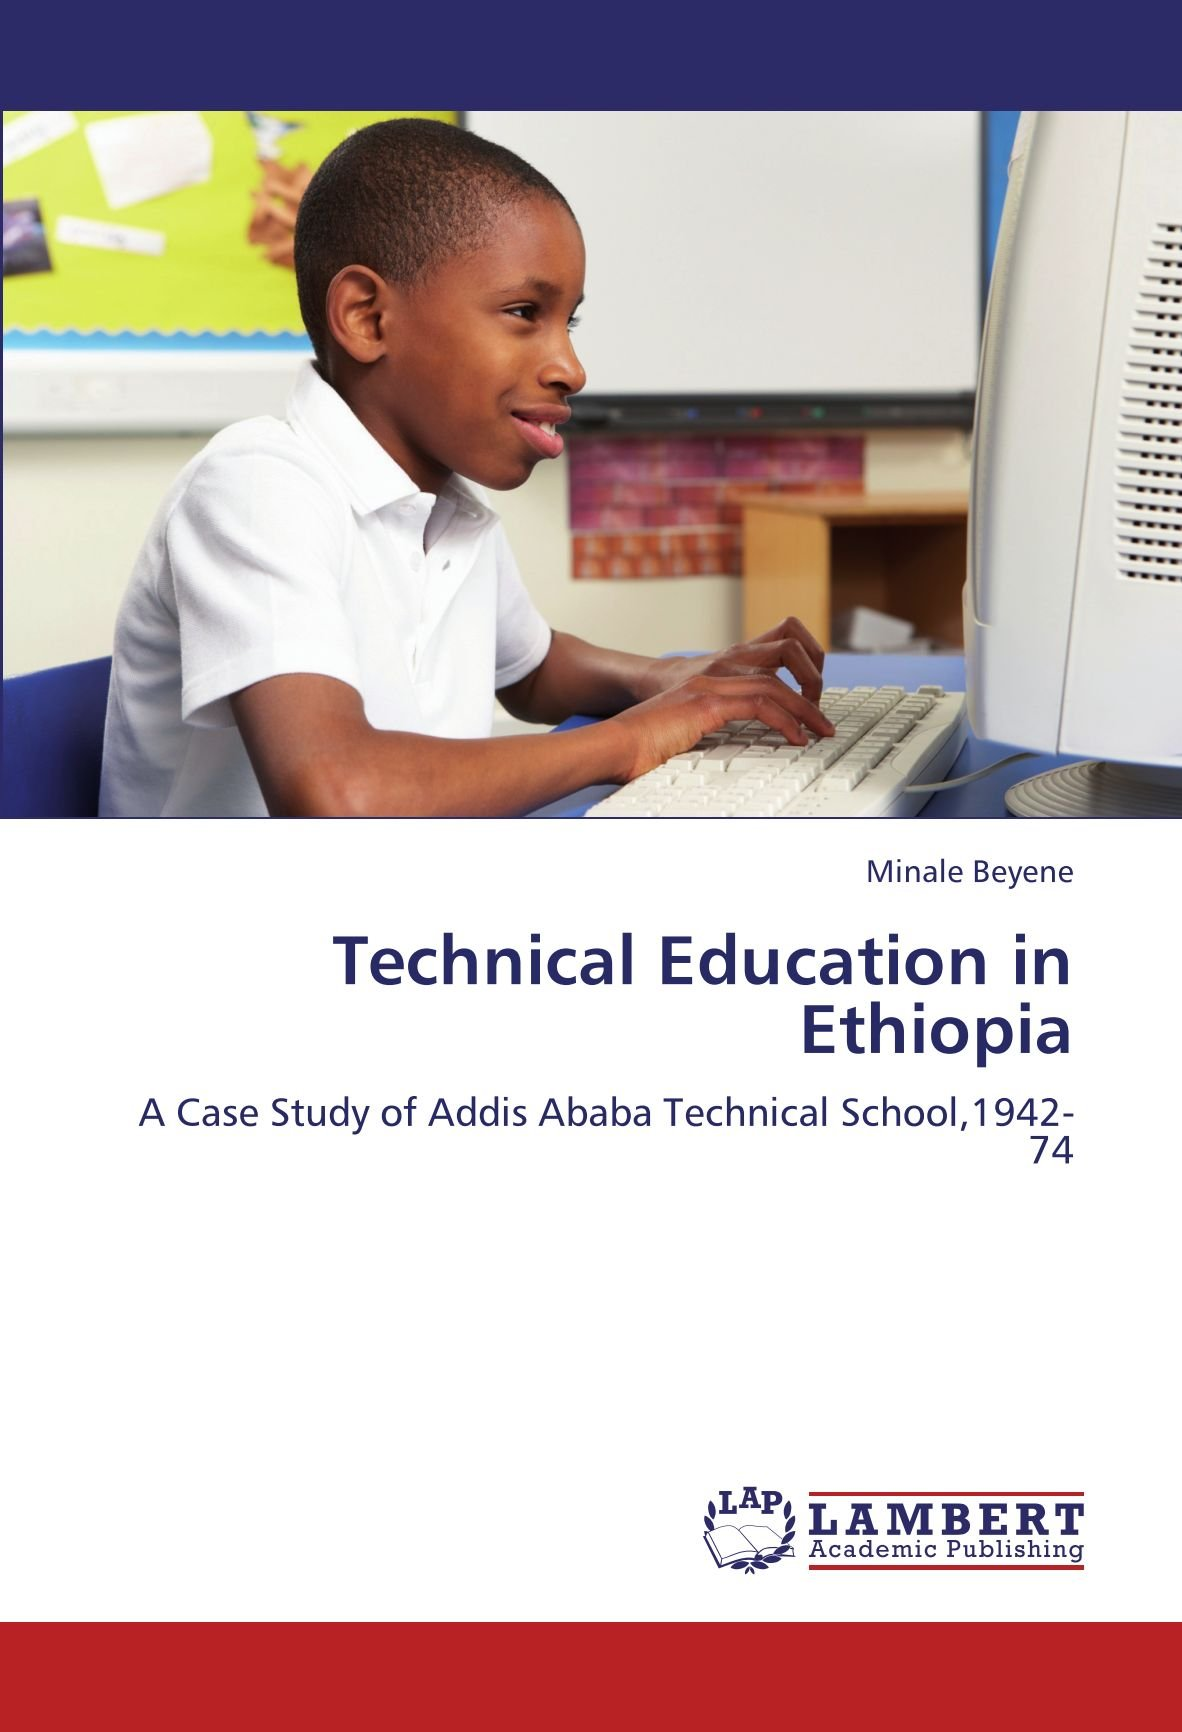 Technical Education in Ethiopia: A Case Study of Addis Ababa Technical School,1942-74